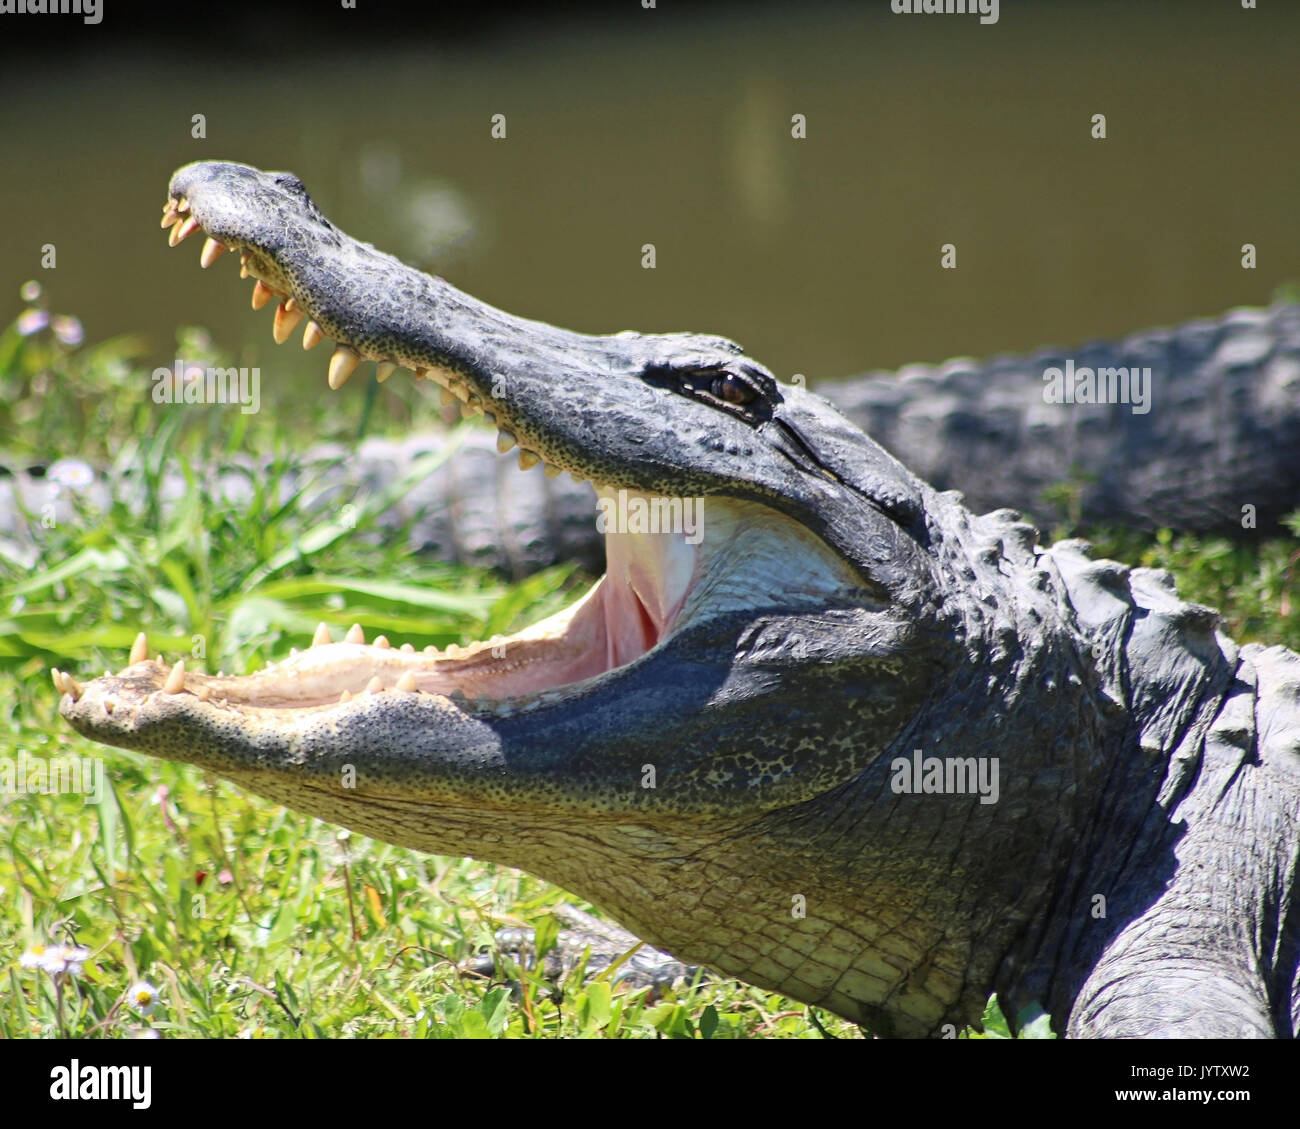 Profil de Alligator, bouche ouverte Photo Stock